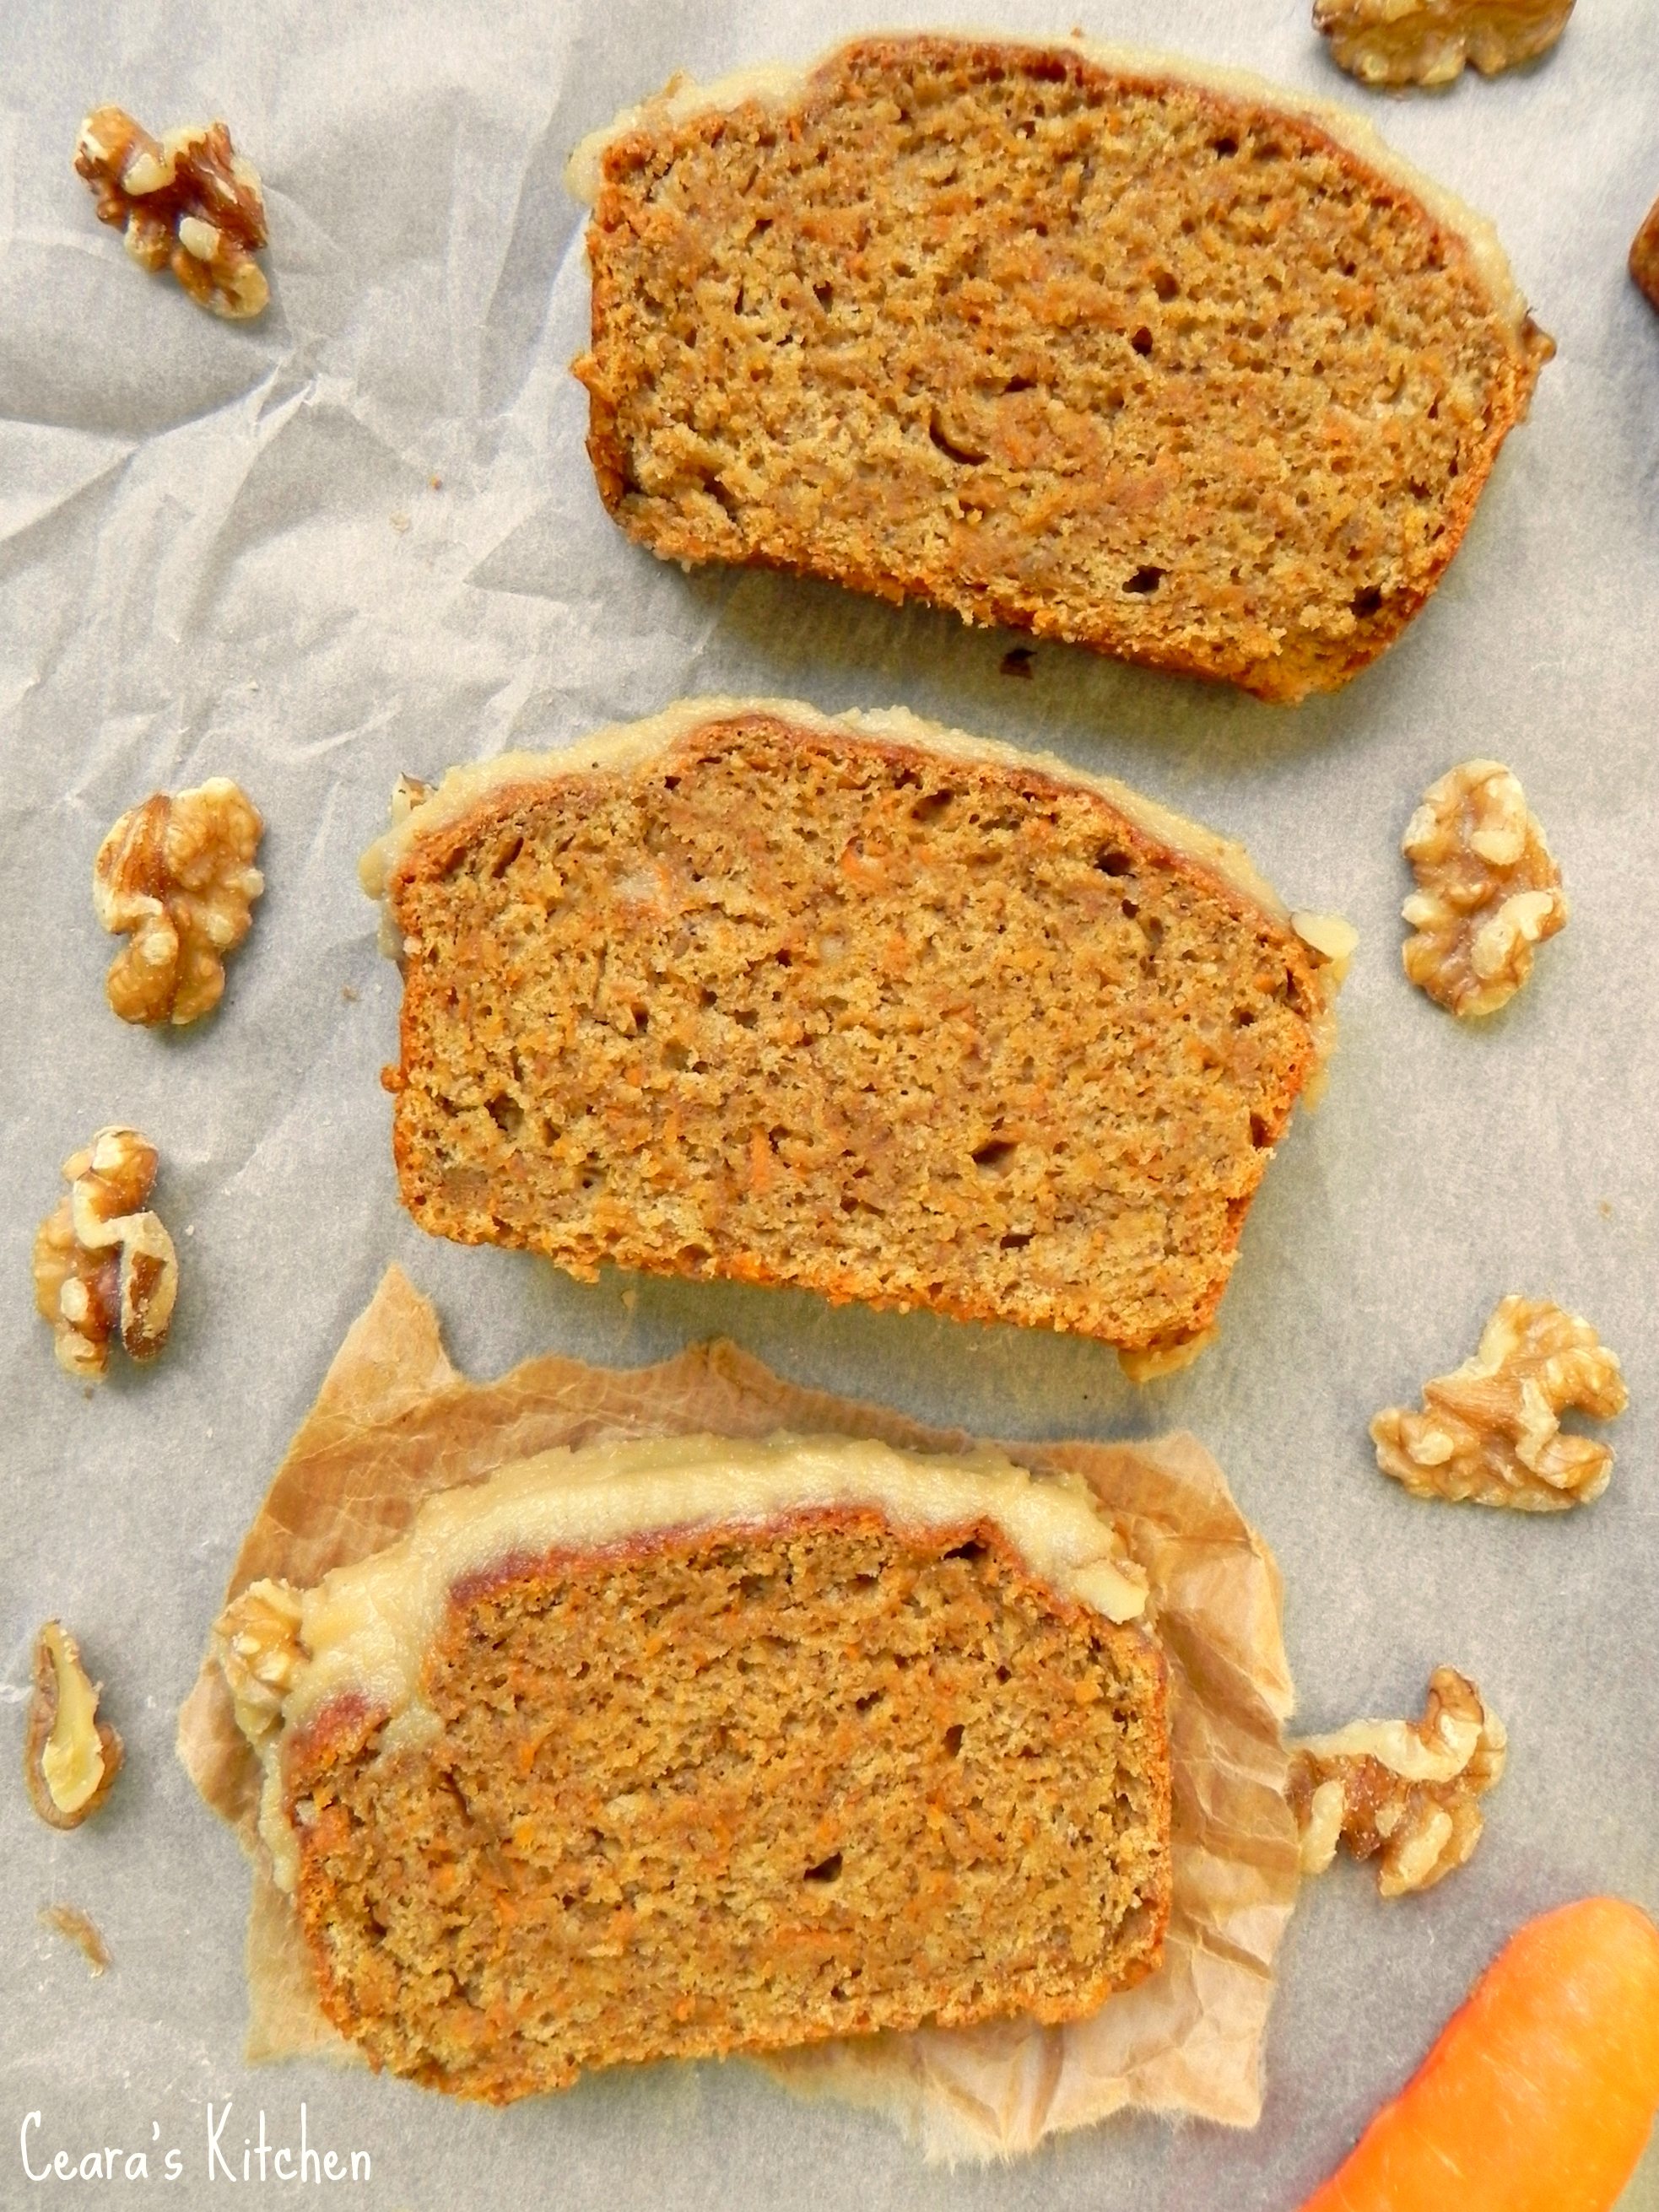 Healthy Carrot Cake Recipe With Whole Wheat Flour